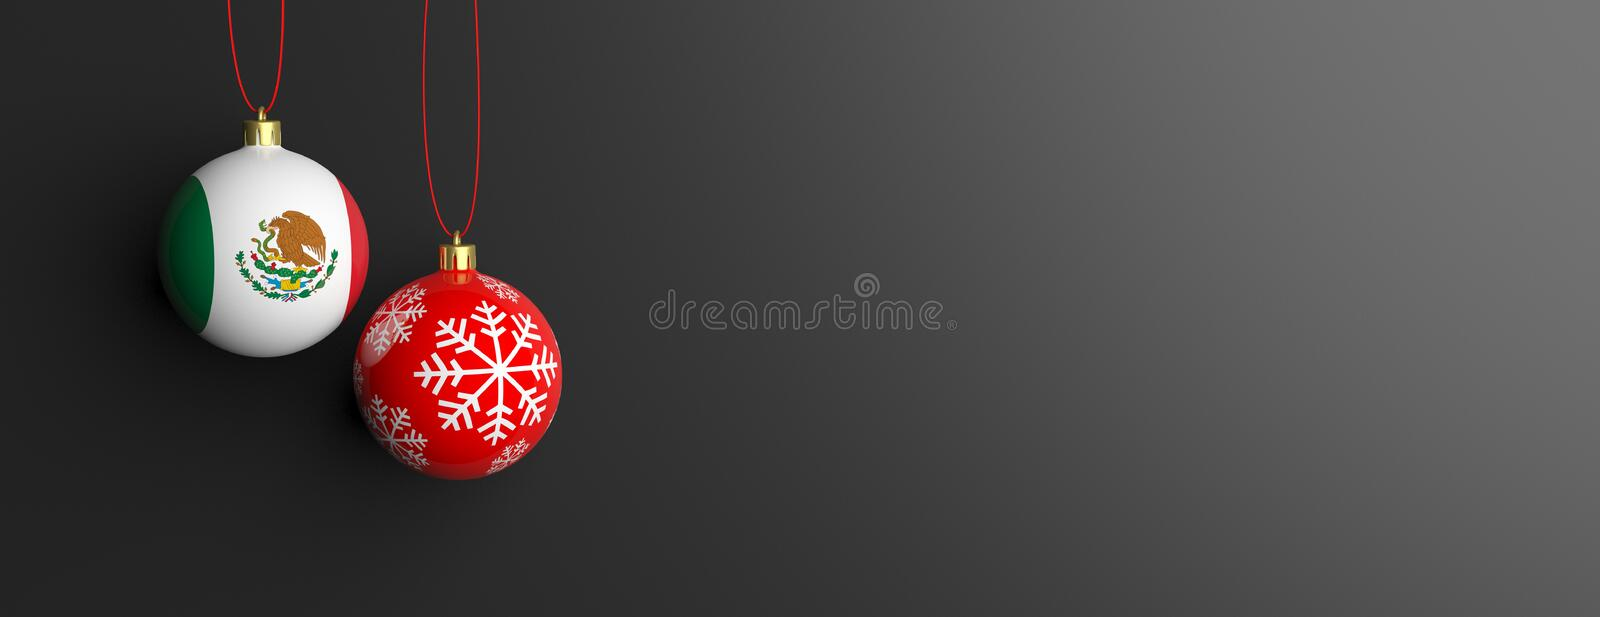 Mexico flag on a christmas ball, black background. 3d illustration royalty free illustration